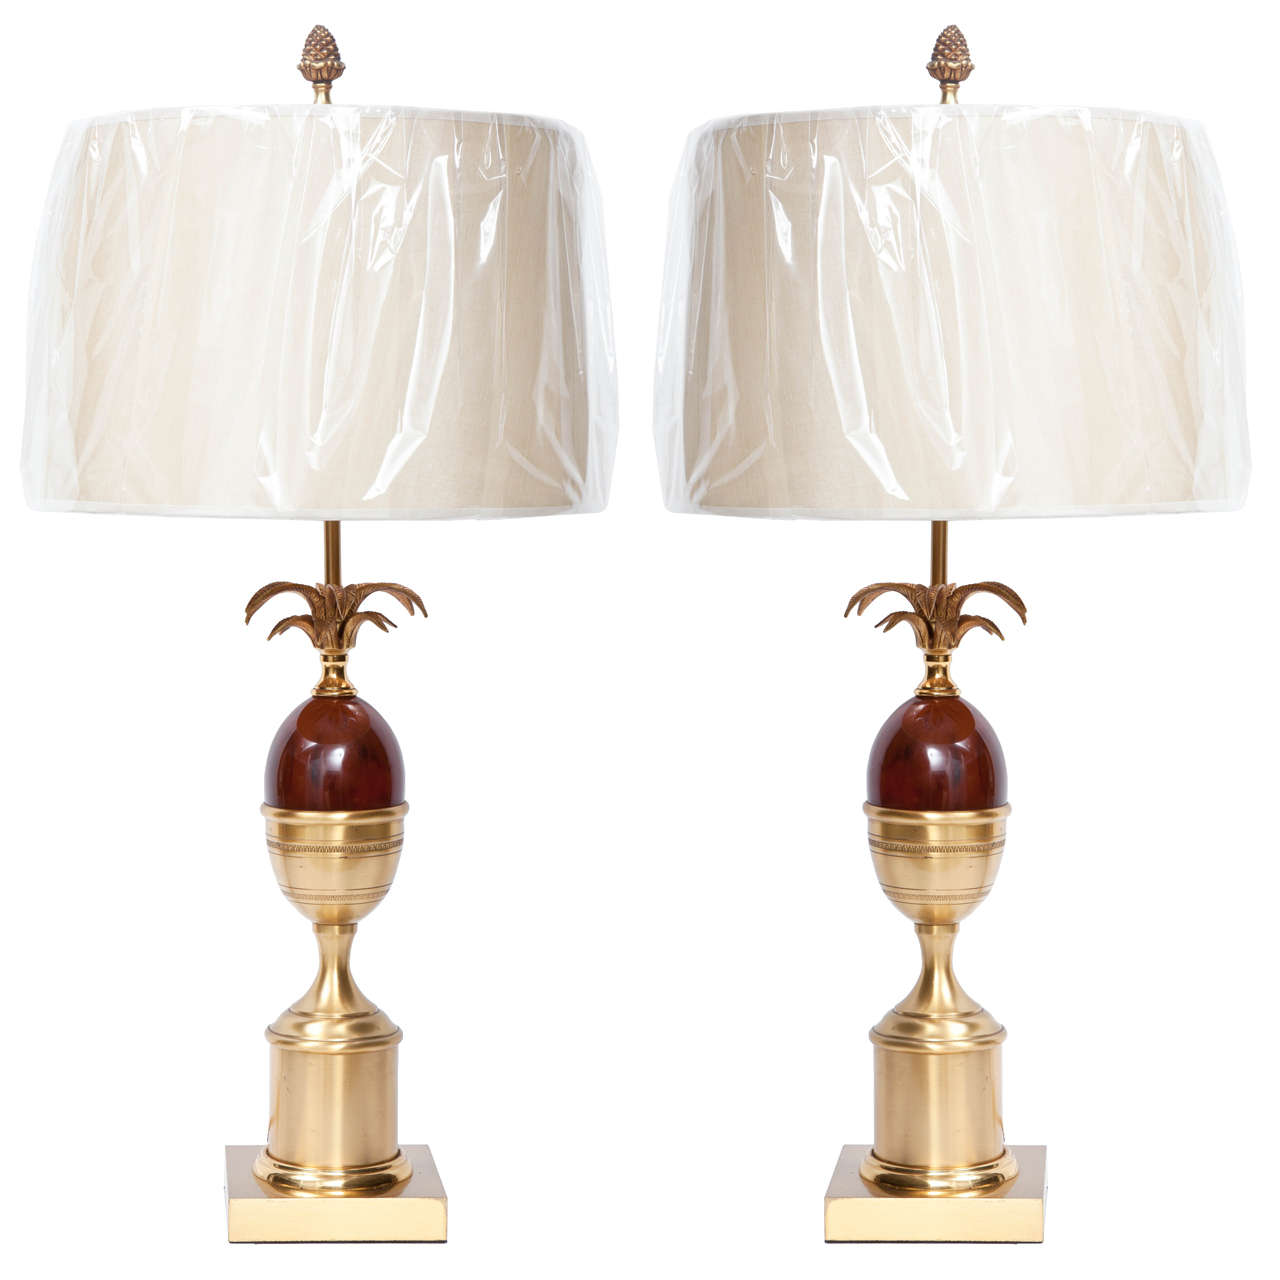 Pair of Brass and Resin Lamps